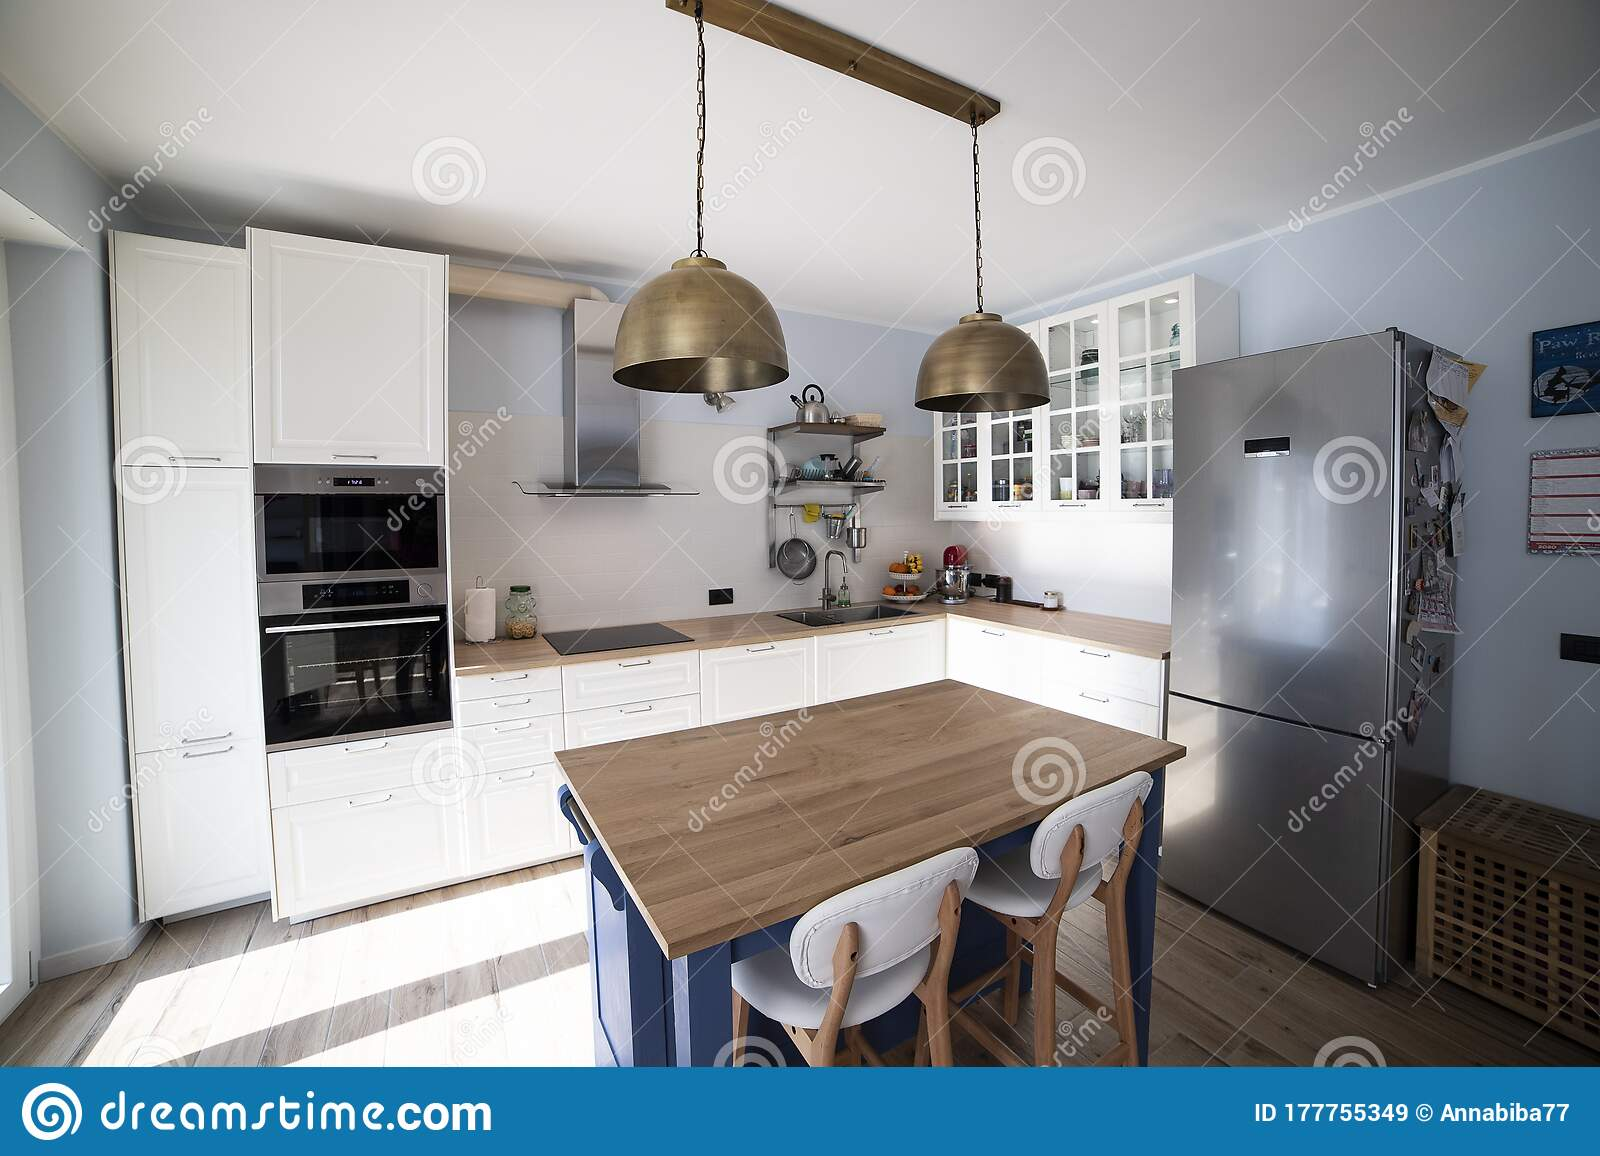 White Kitchen With Blue Island Stock Image Image Of Kitchen Island 177755349